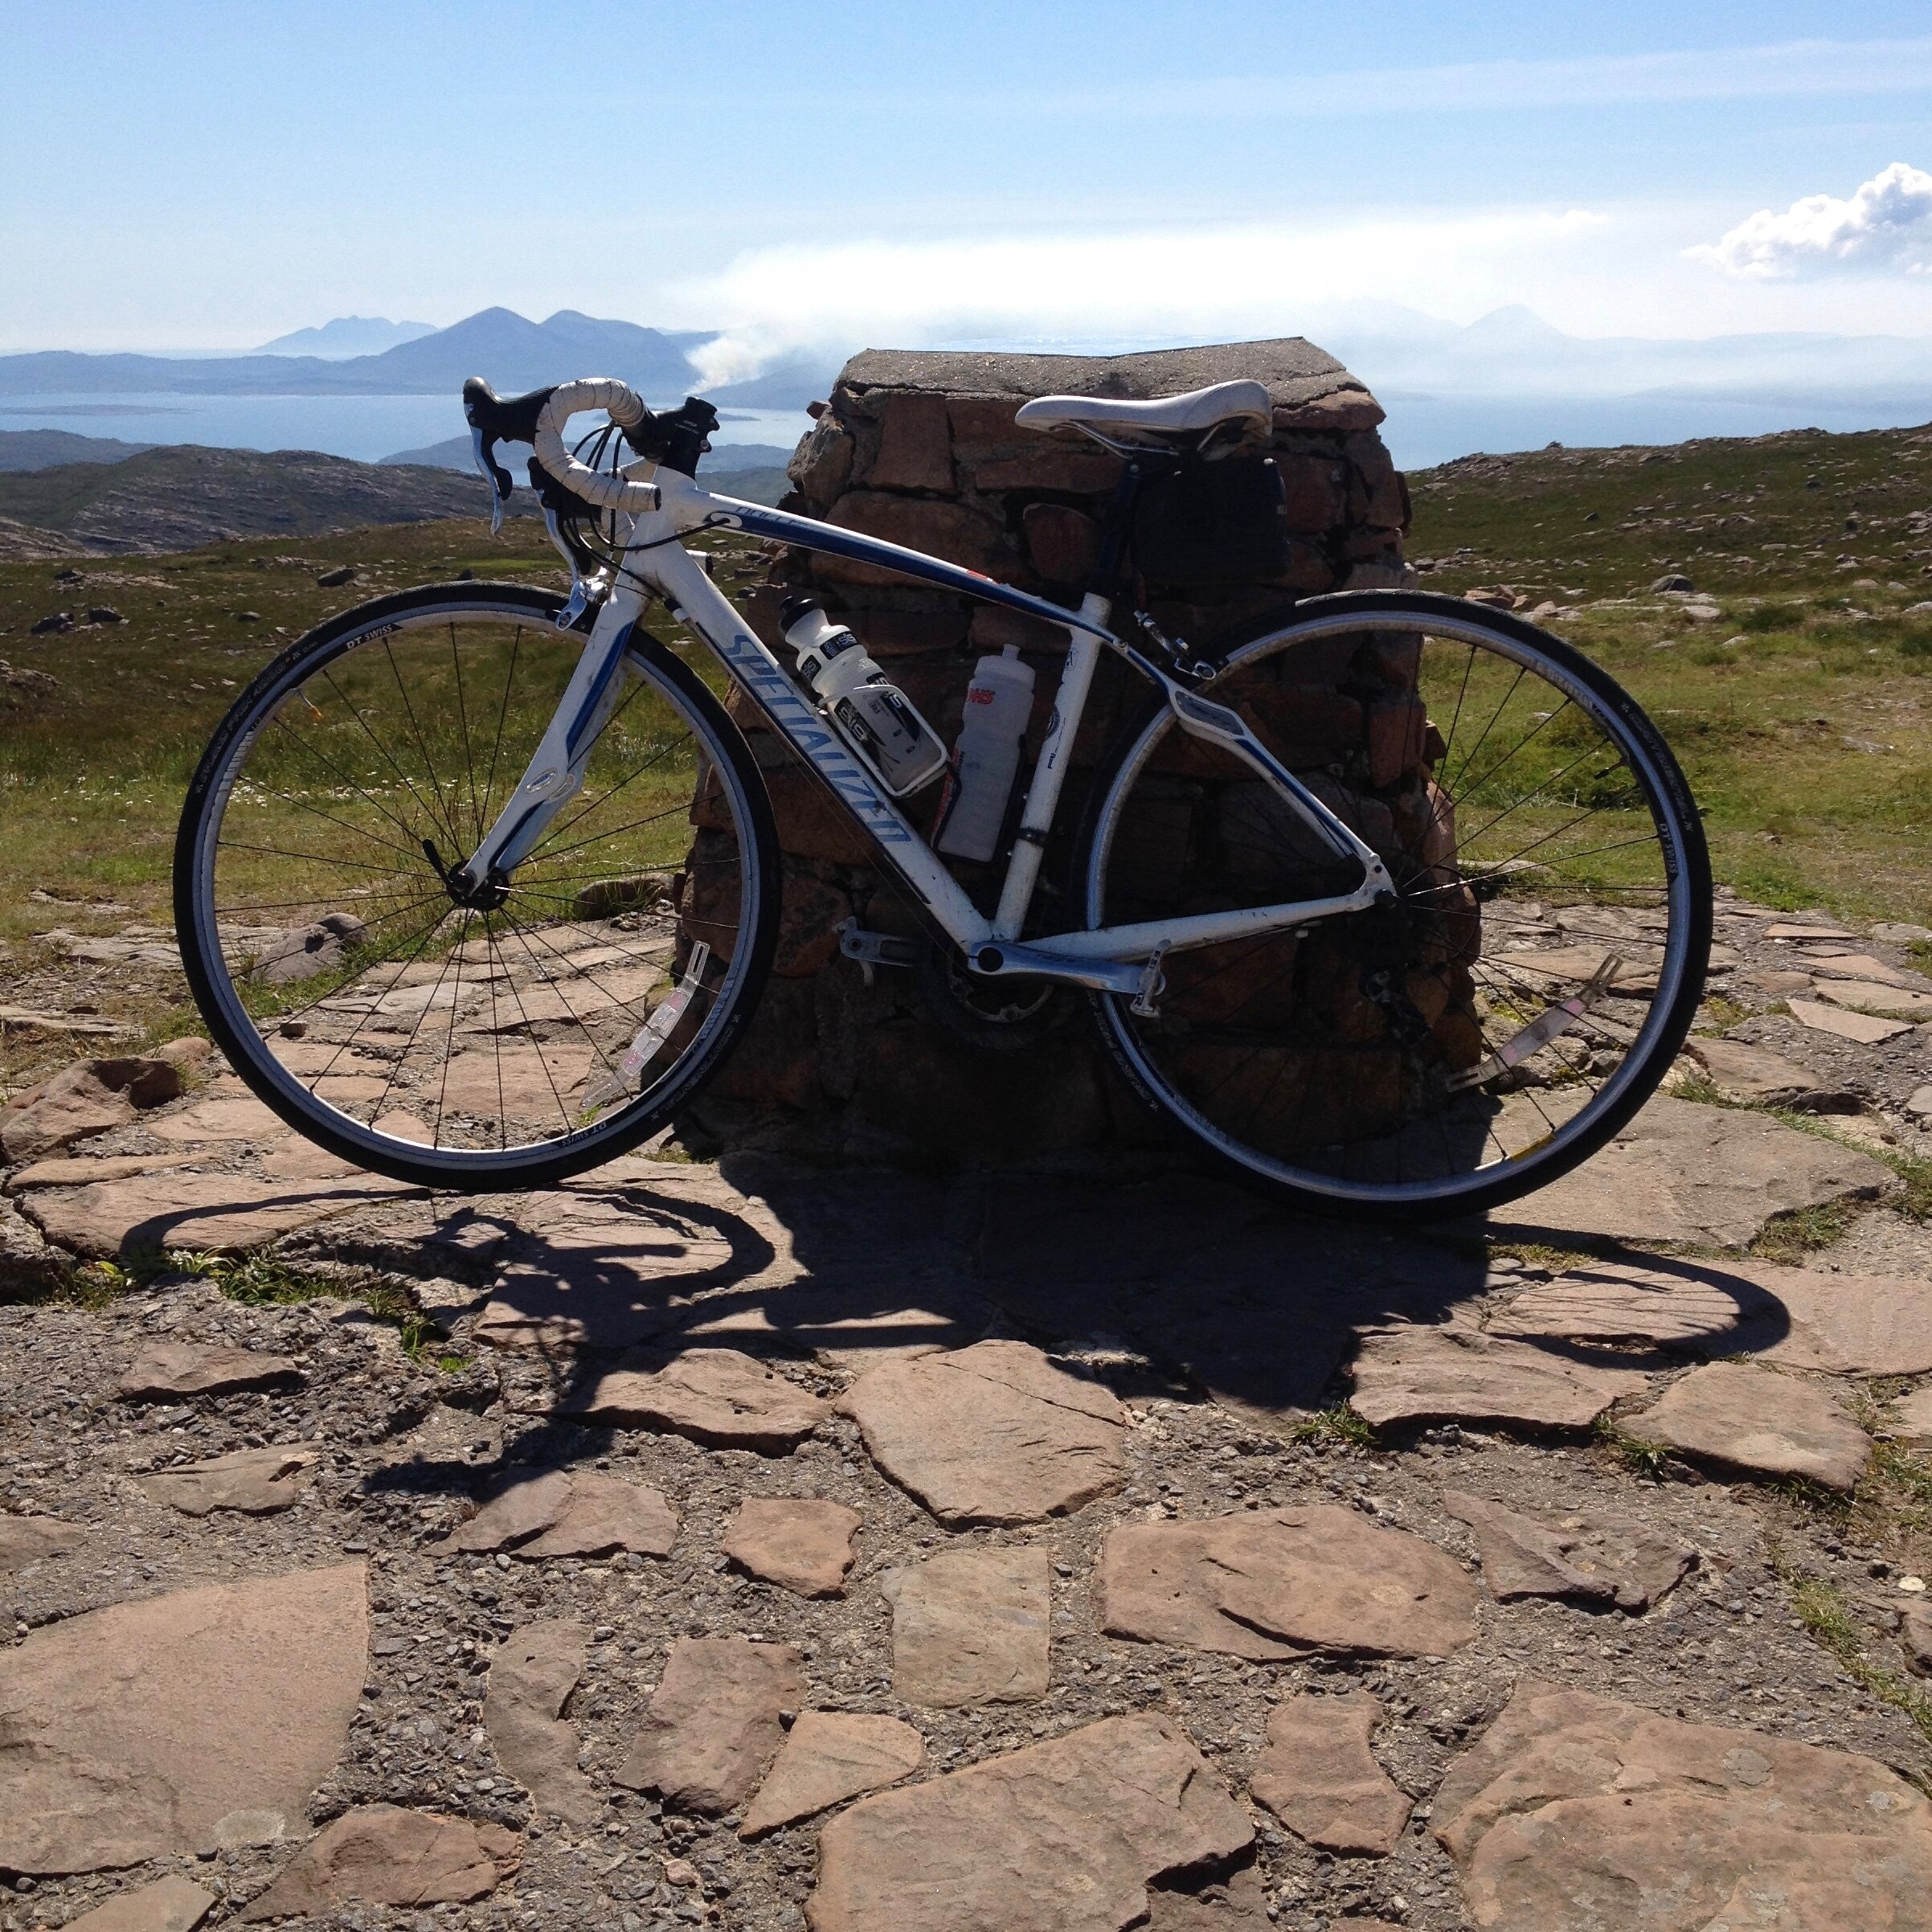 Ever since I saw it in '100 Greatest Cycling Climbs' by Simon Warren I wanted to get to the top of Bealach na Bà; I was very chuffed when I finally made it!